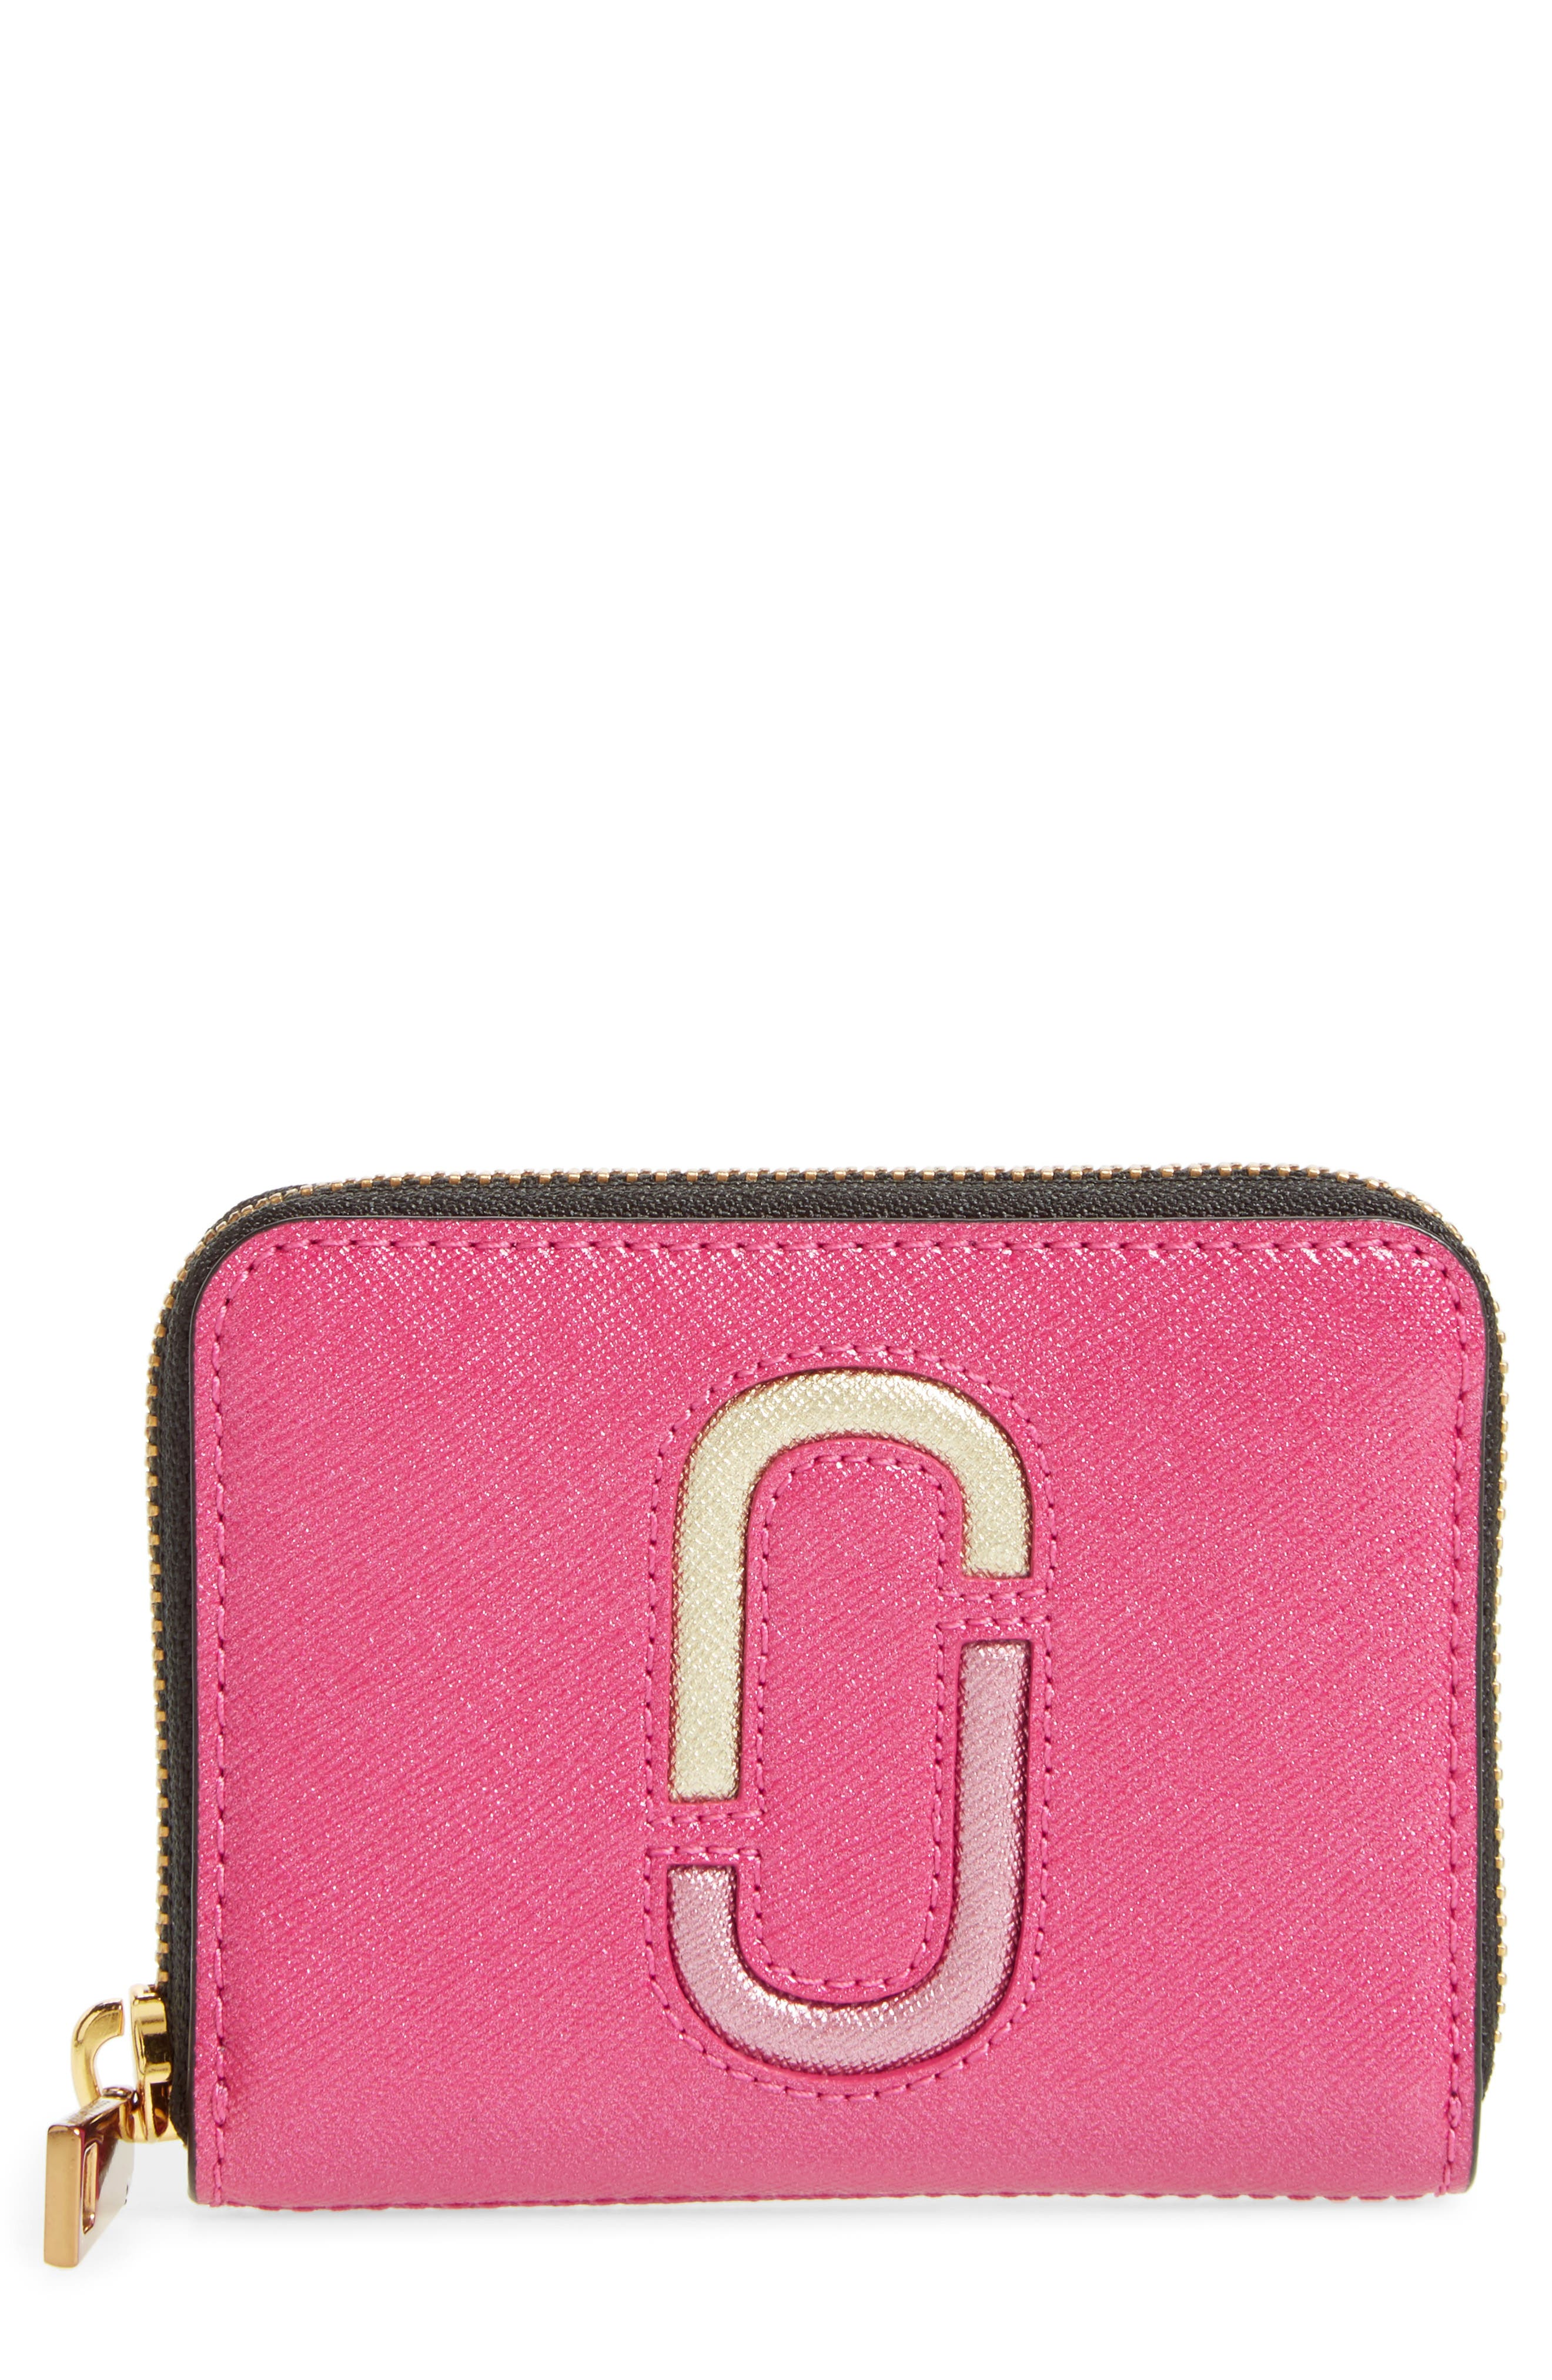 Alternate Image 1 Selected - MARC JACOBS Snapshot Saffiano Leather Zip Around Wallet